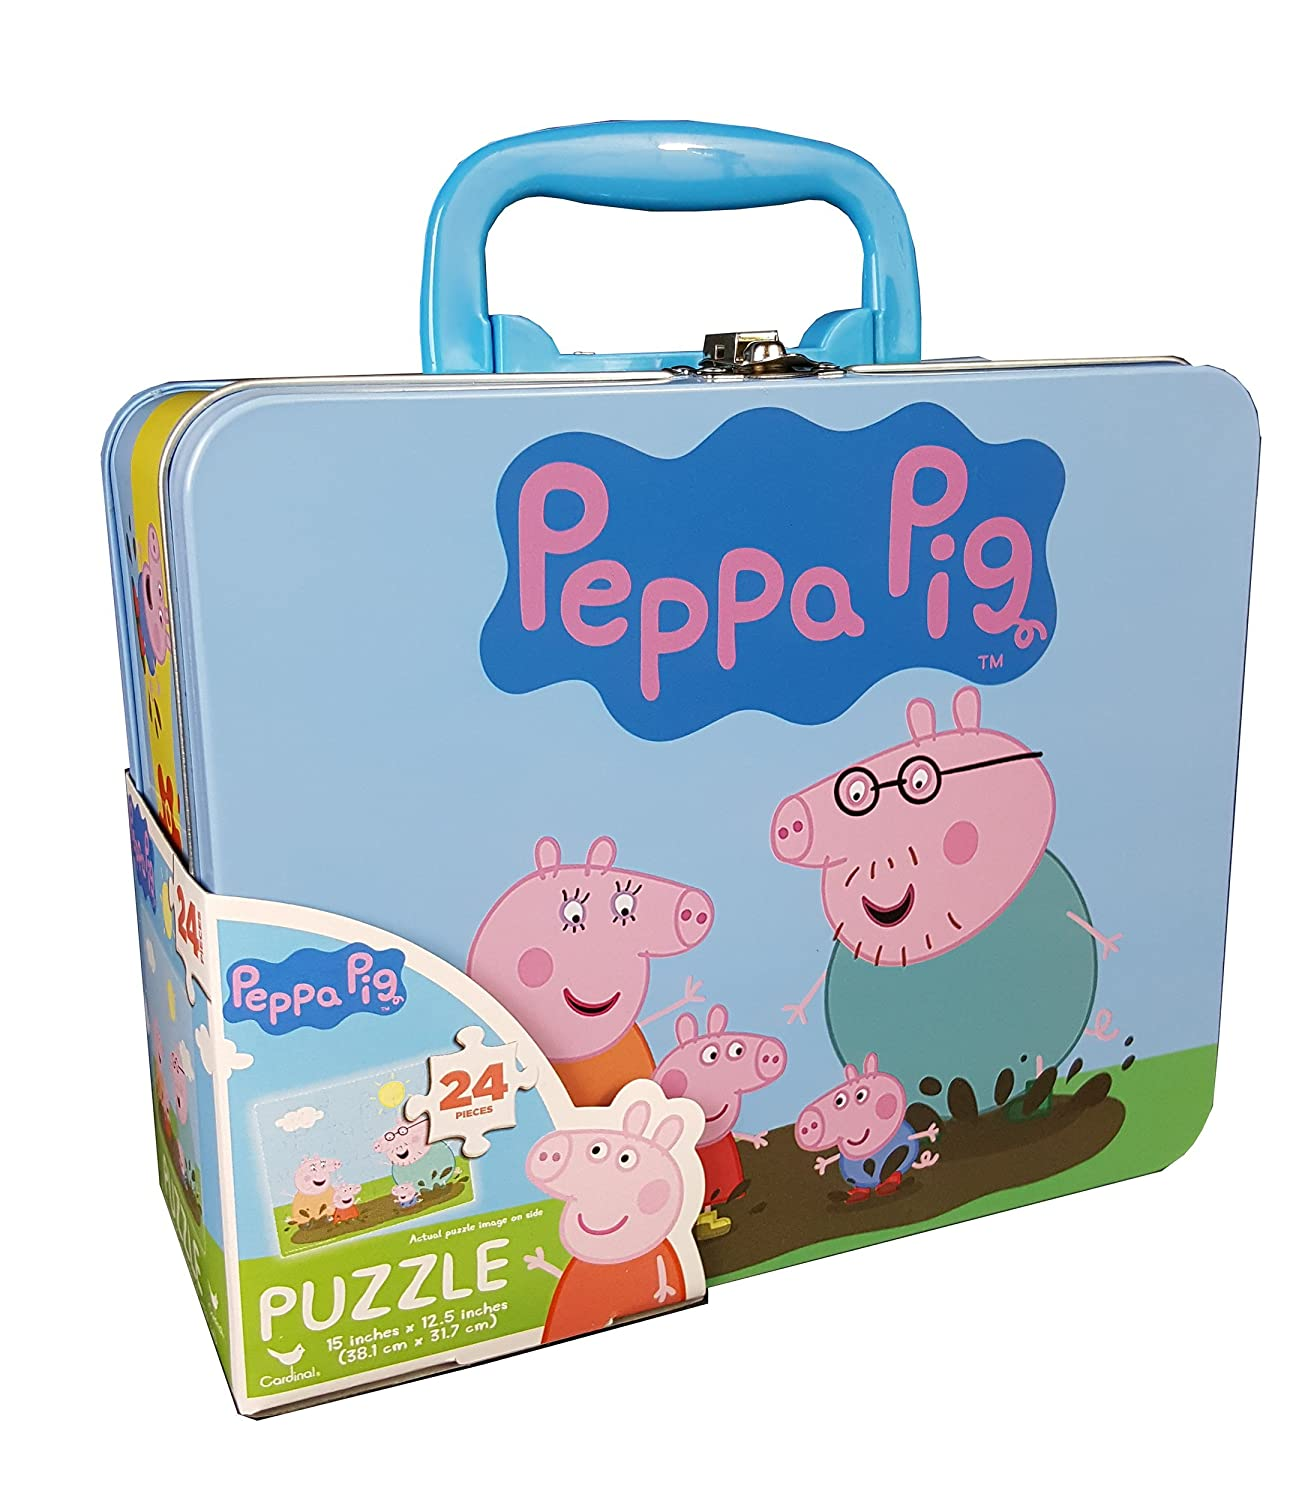 CARU9 6032891 Cardinal Industries Peppa Pig Puzzle in Tin with Handle 24 Pieces